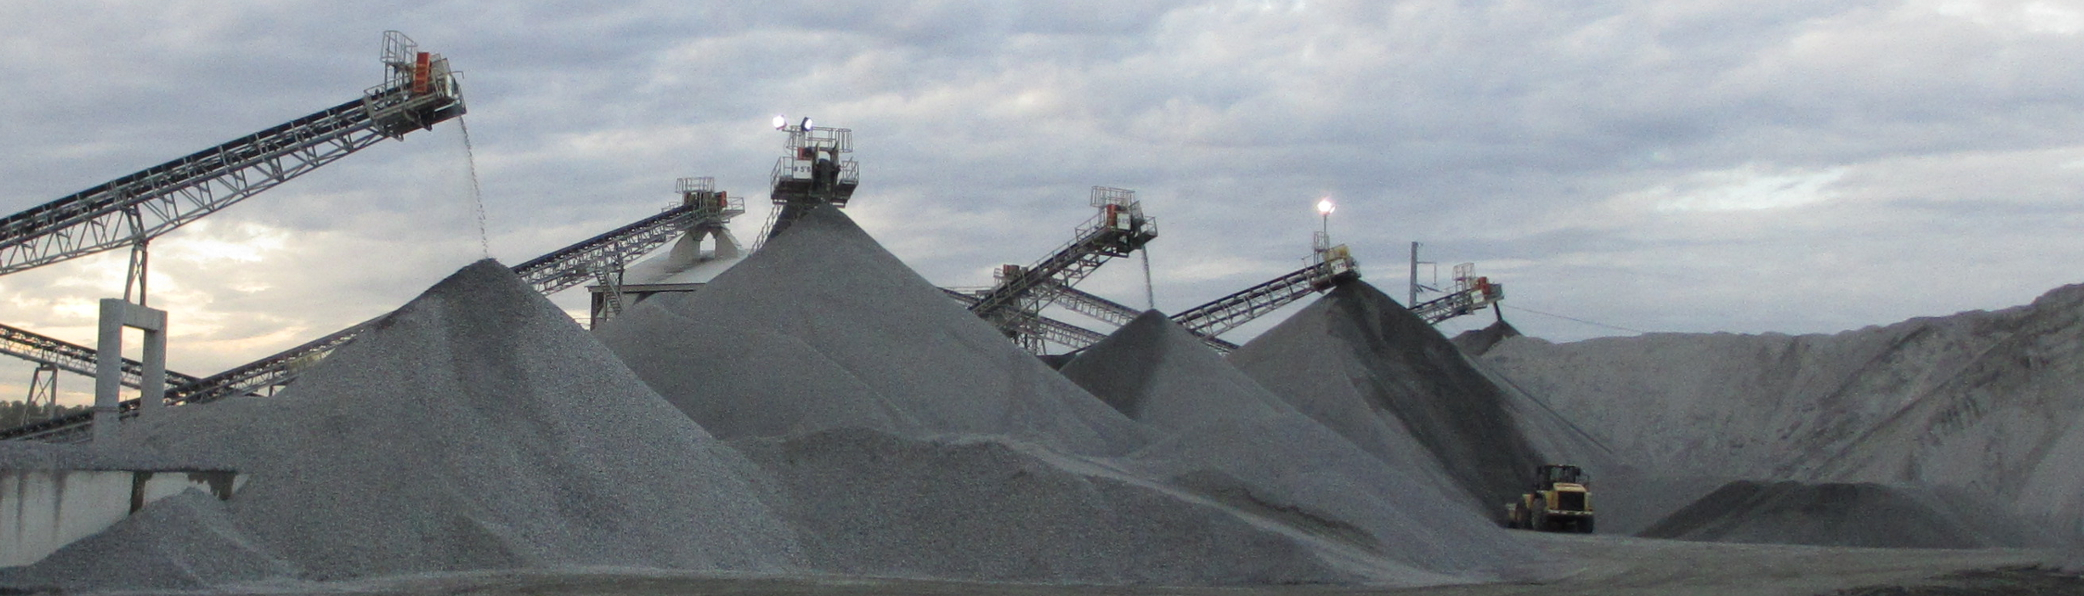 Norcross stockpiles